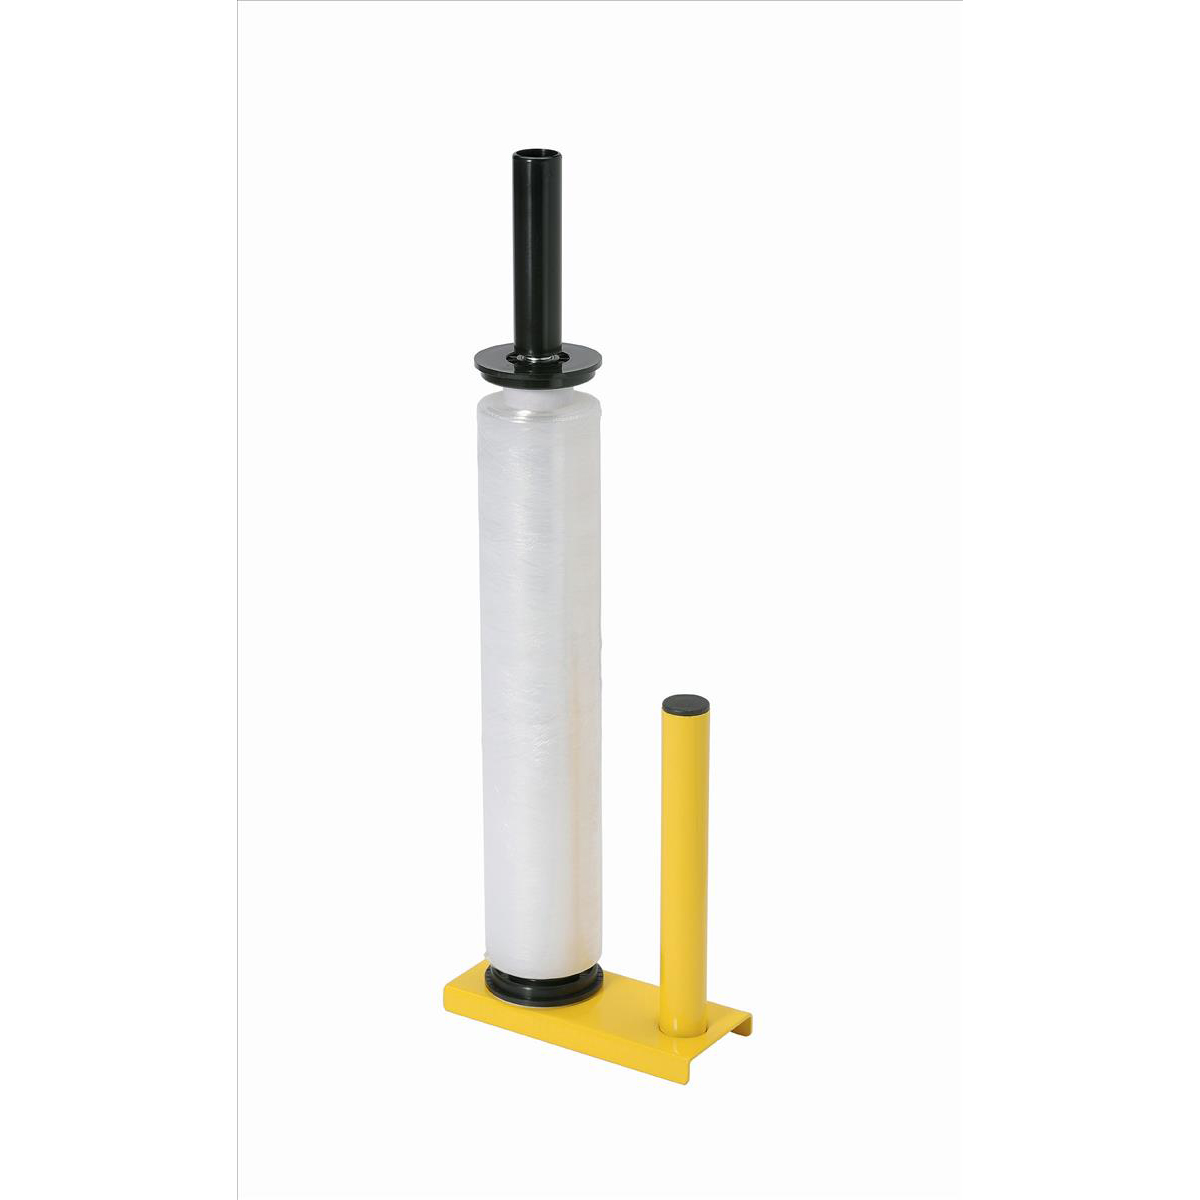 Stretchwrap Stretchwrap Dispenser Freestanding Cores 38 & 50 & 75mm and Lengths 400 & 500mm